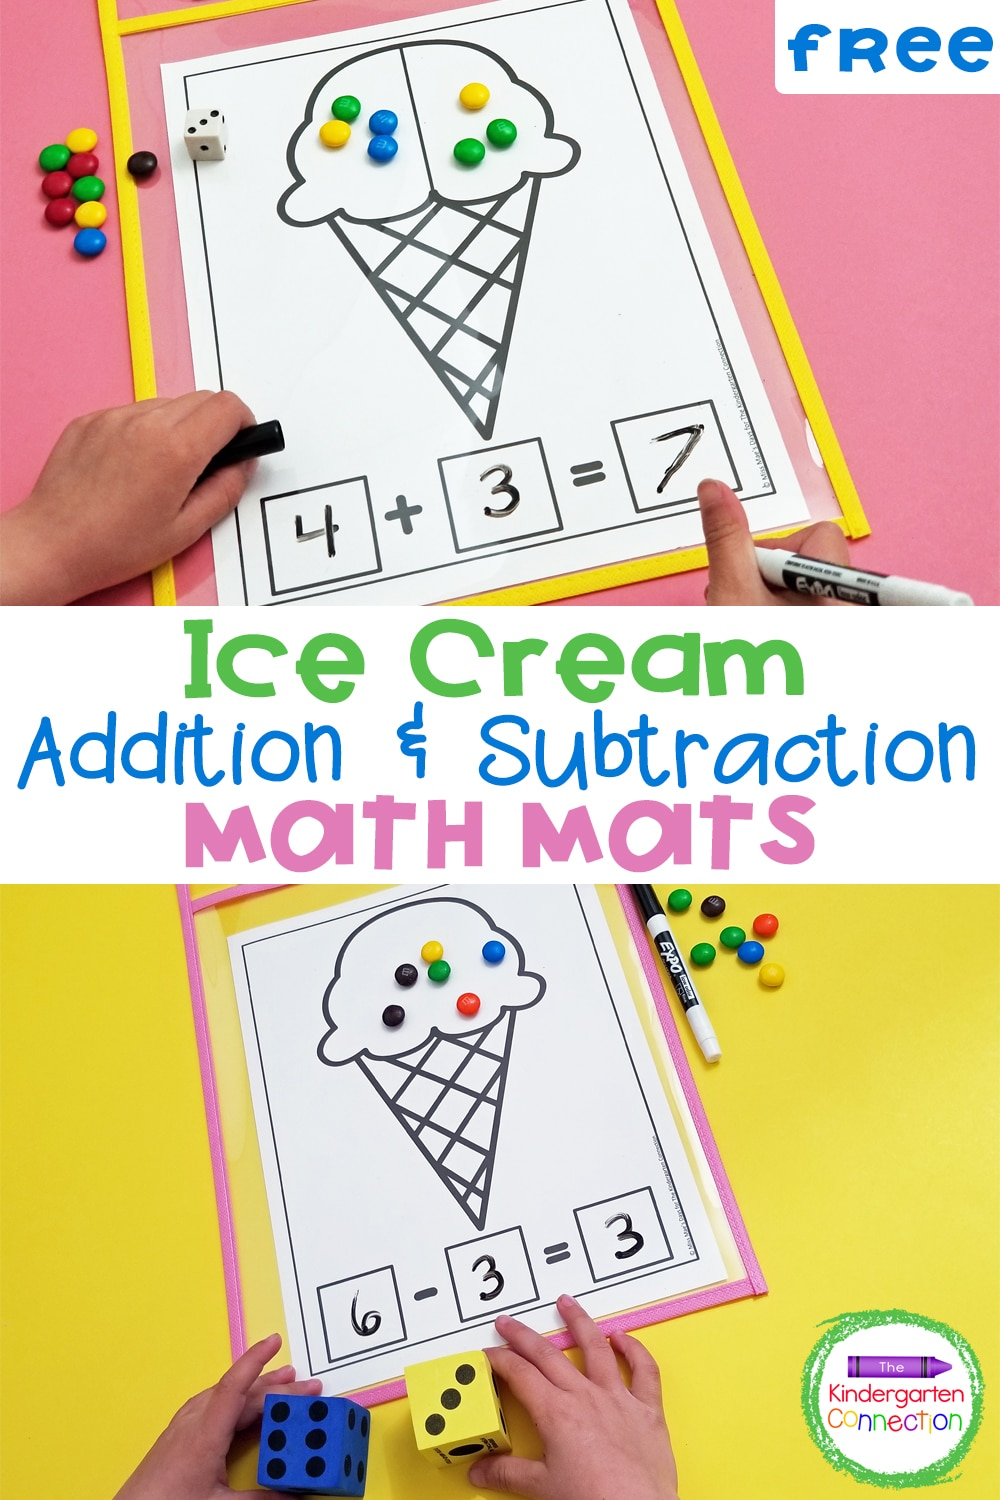 Grab these FREE printable Ice Cream Math Mats and bring some sweet fun to your Kindergarten or 1st grade math centers or small groups!